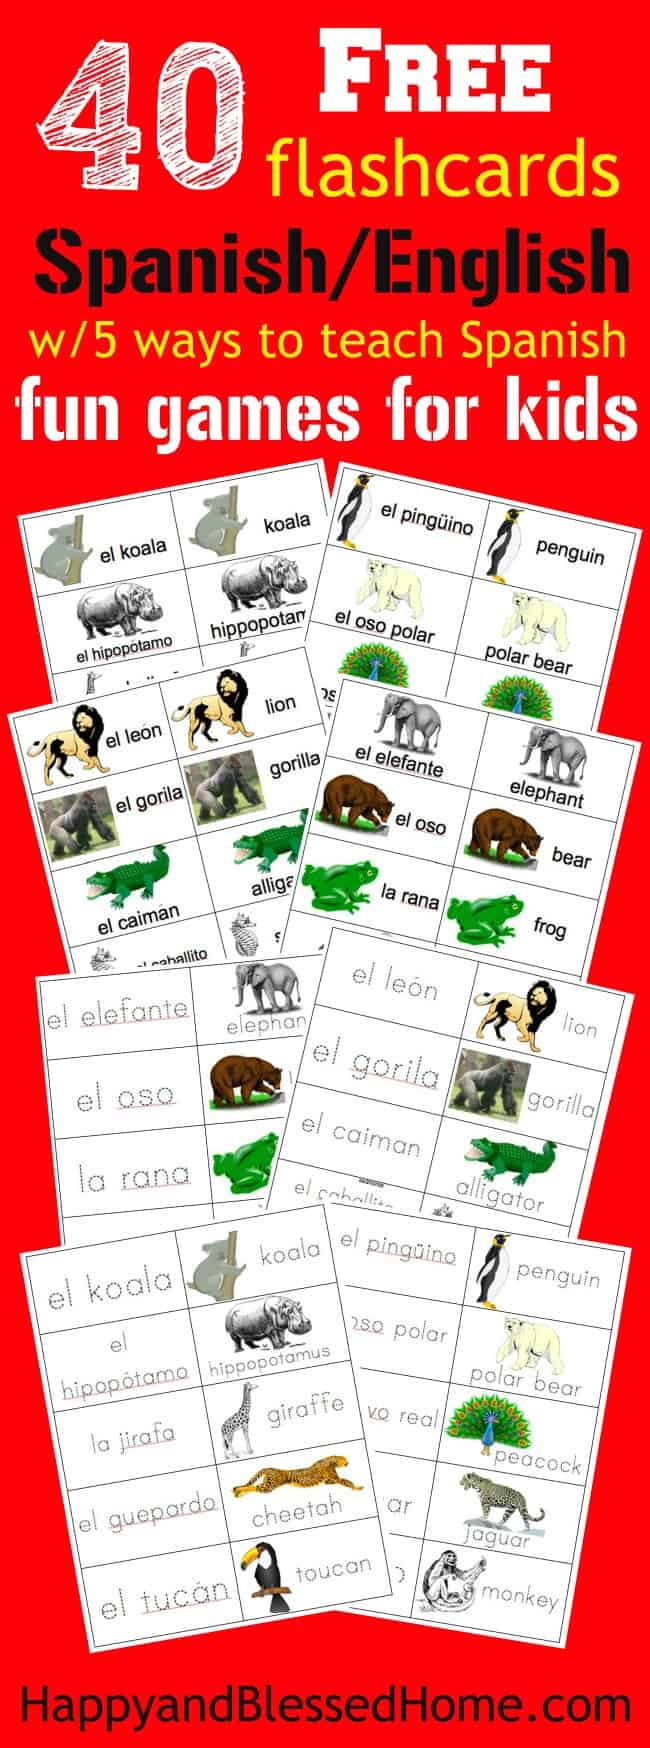 picture regarding Spanish Flashcards Printable named 40 Totally free Printable Spanish-English Jungle Animal Flashcards